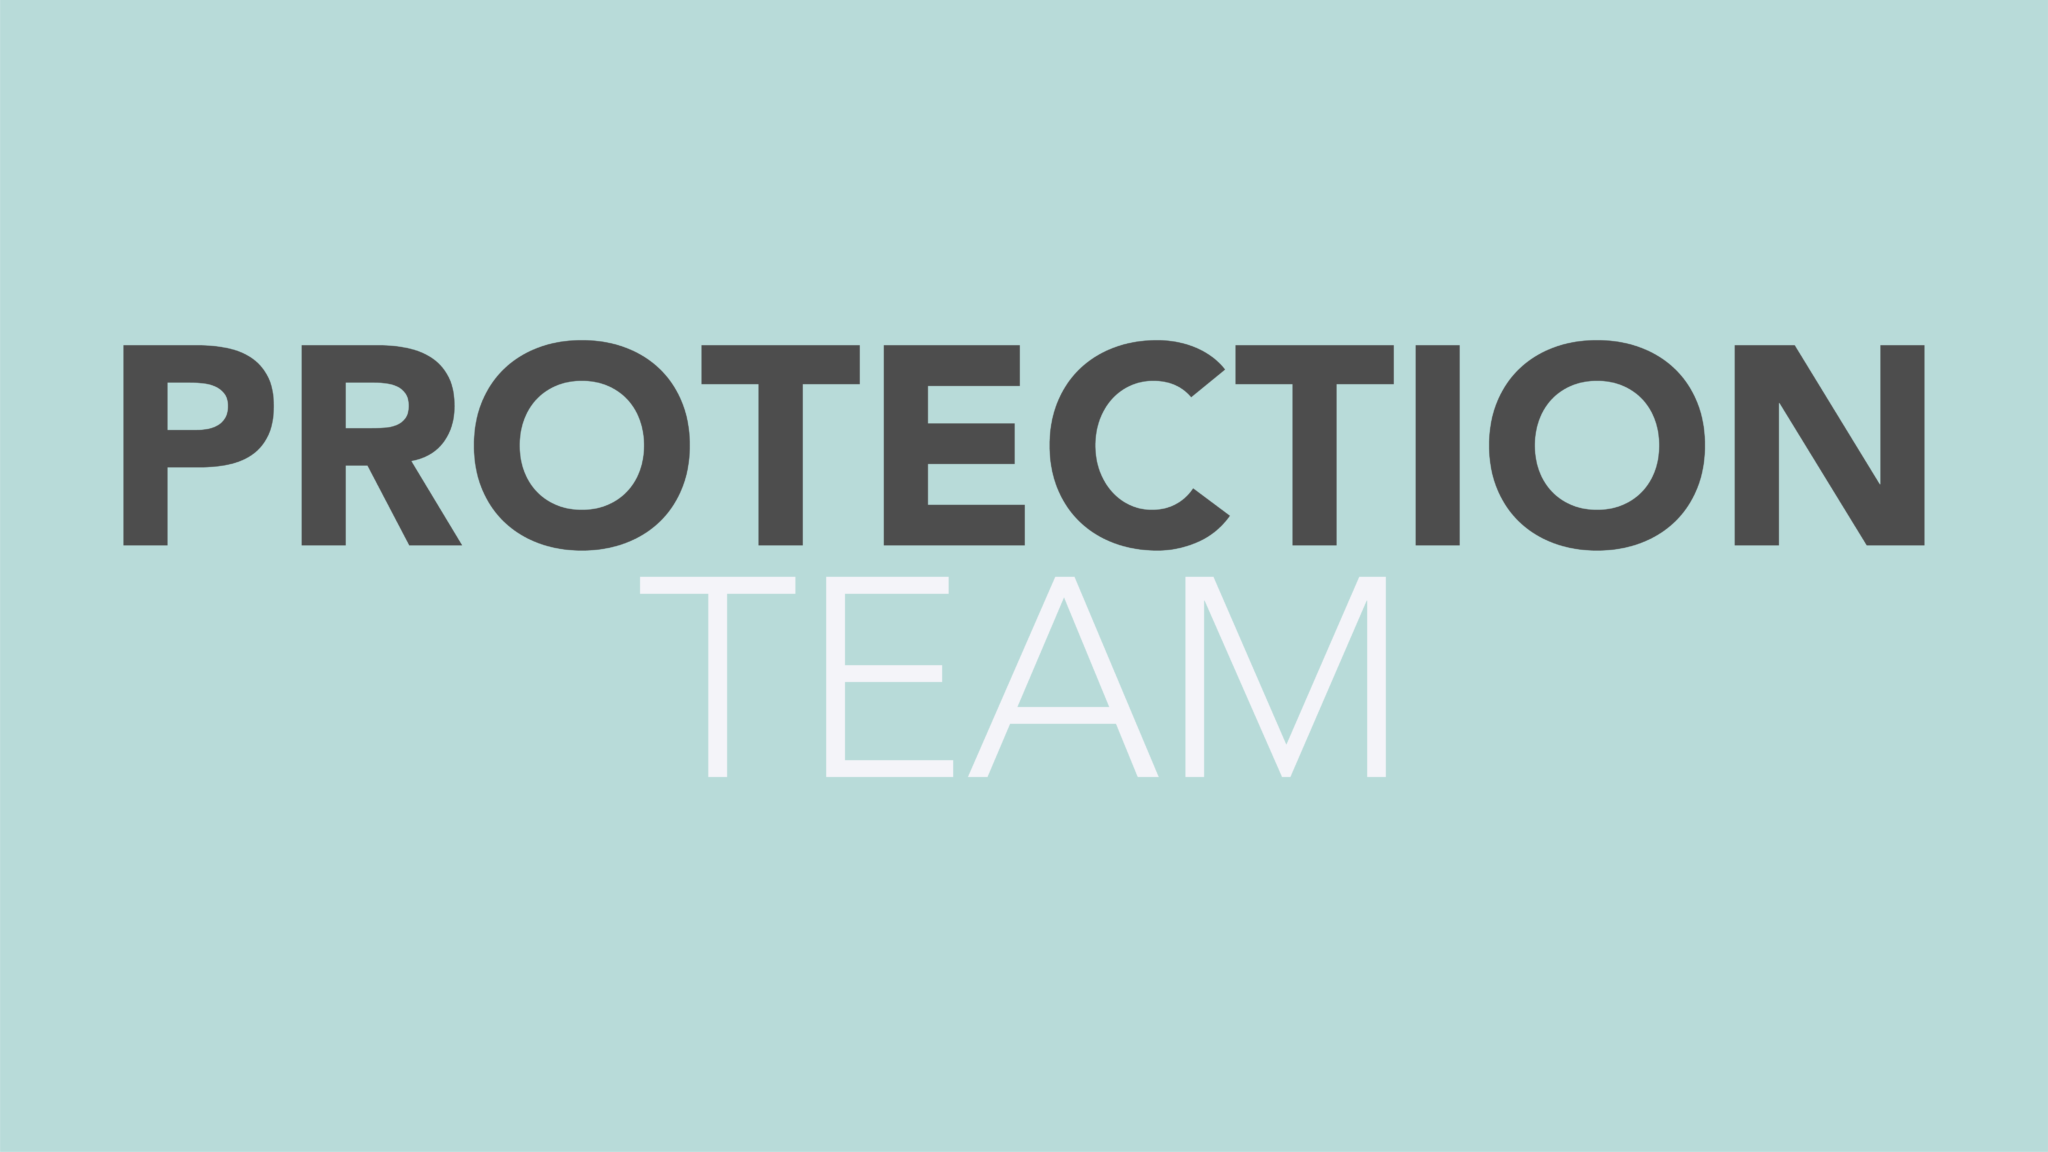 Protection Team